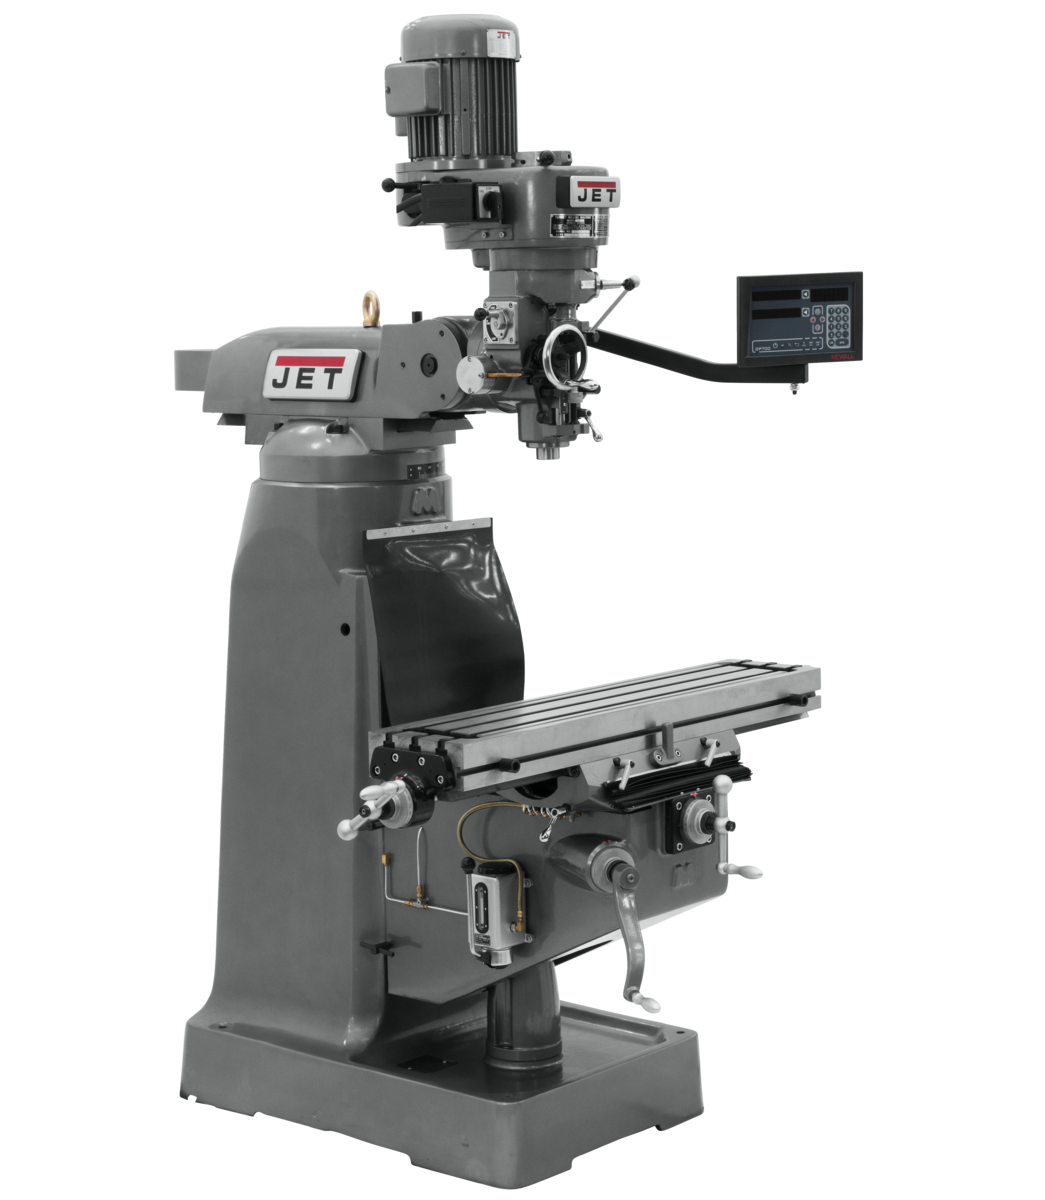 JVM-836-1 Mill With 3-Axis Newall DP700 DRO (Knee)